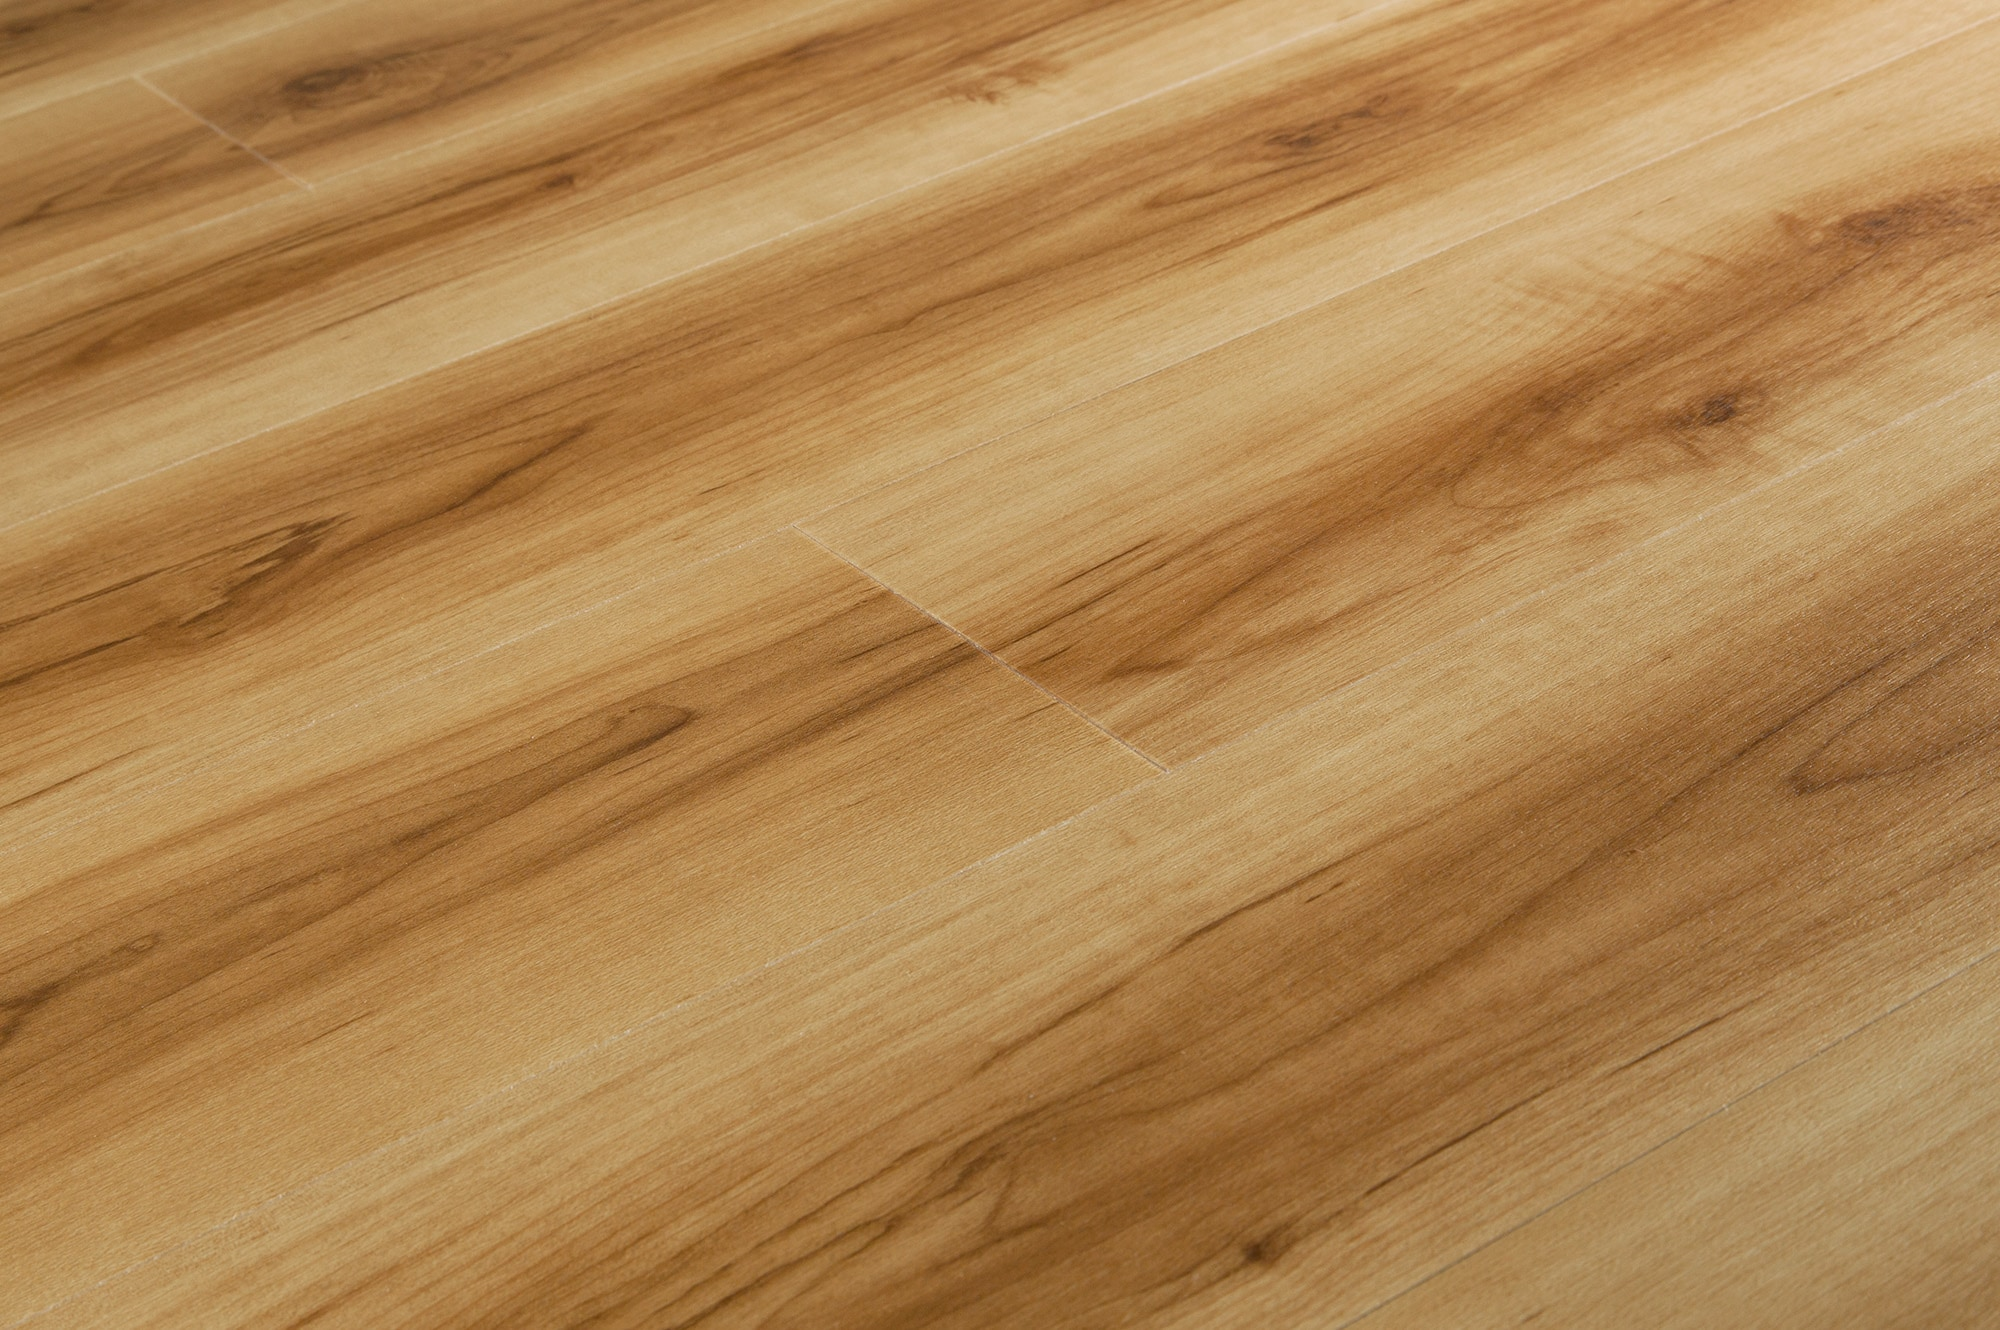 Vesdura Vinyl Planks   5mm PVC Click Lock   Autumn Collection Natural  Hickory